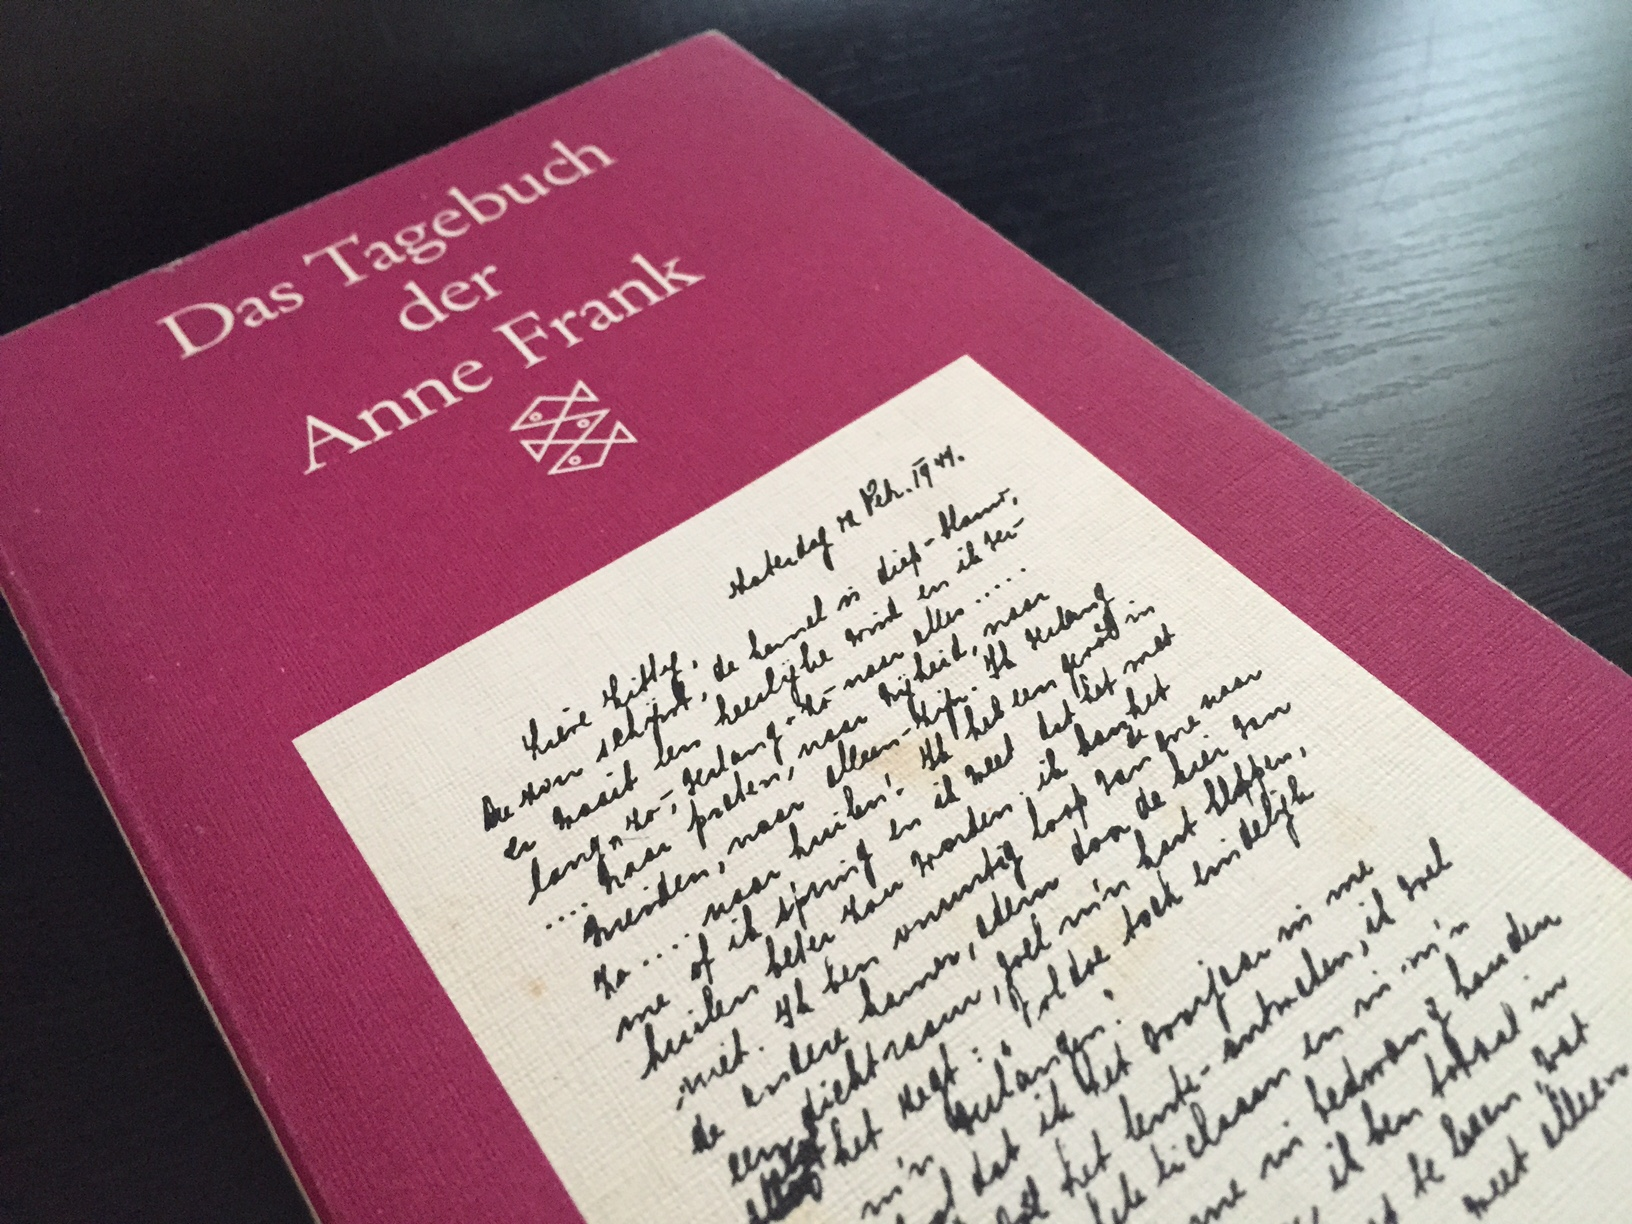 reflection about anne frank and making blogging connections  anne frank buch